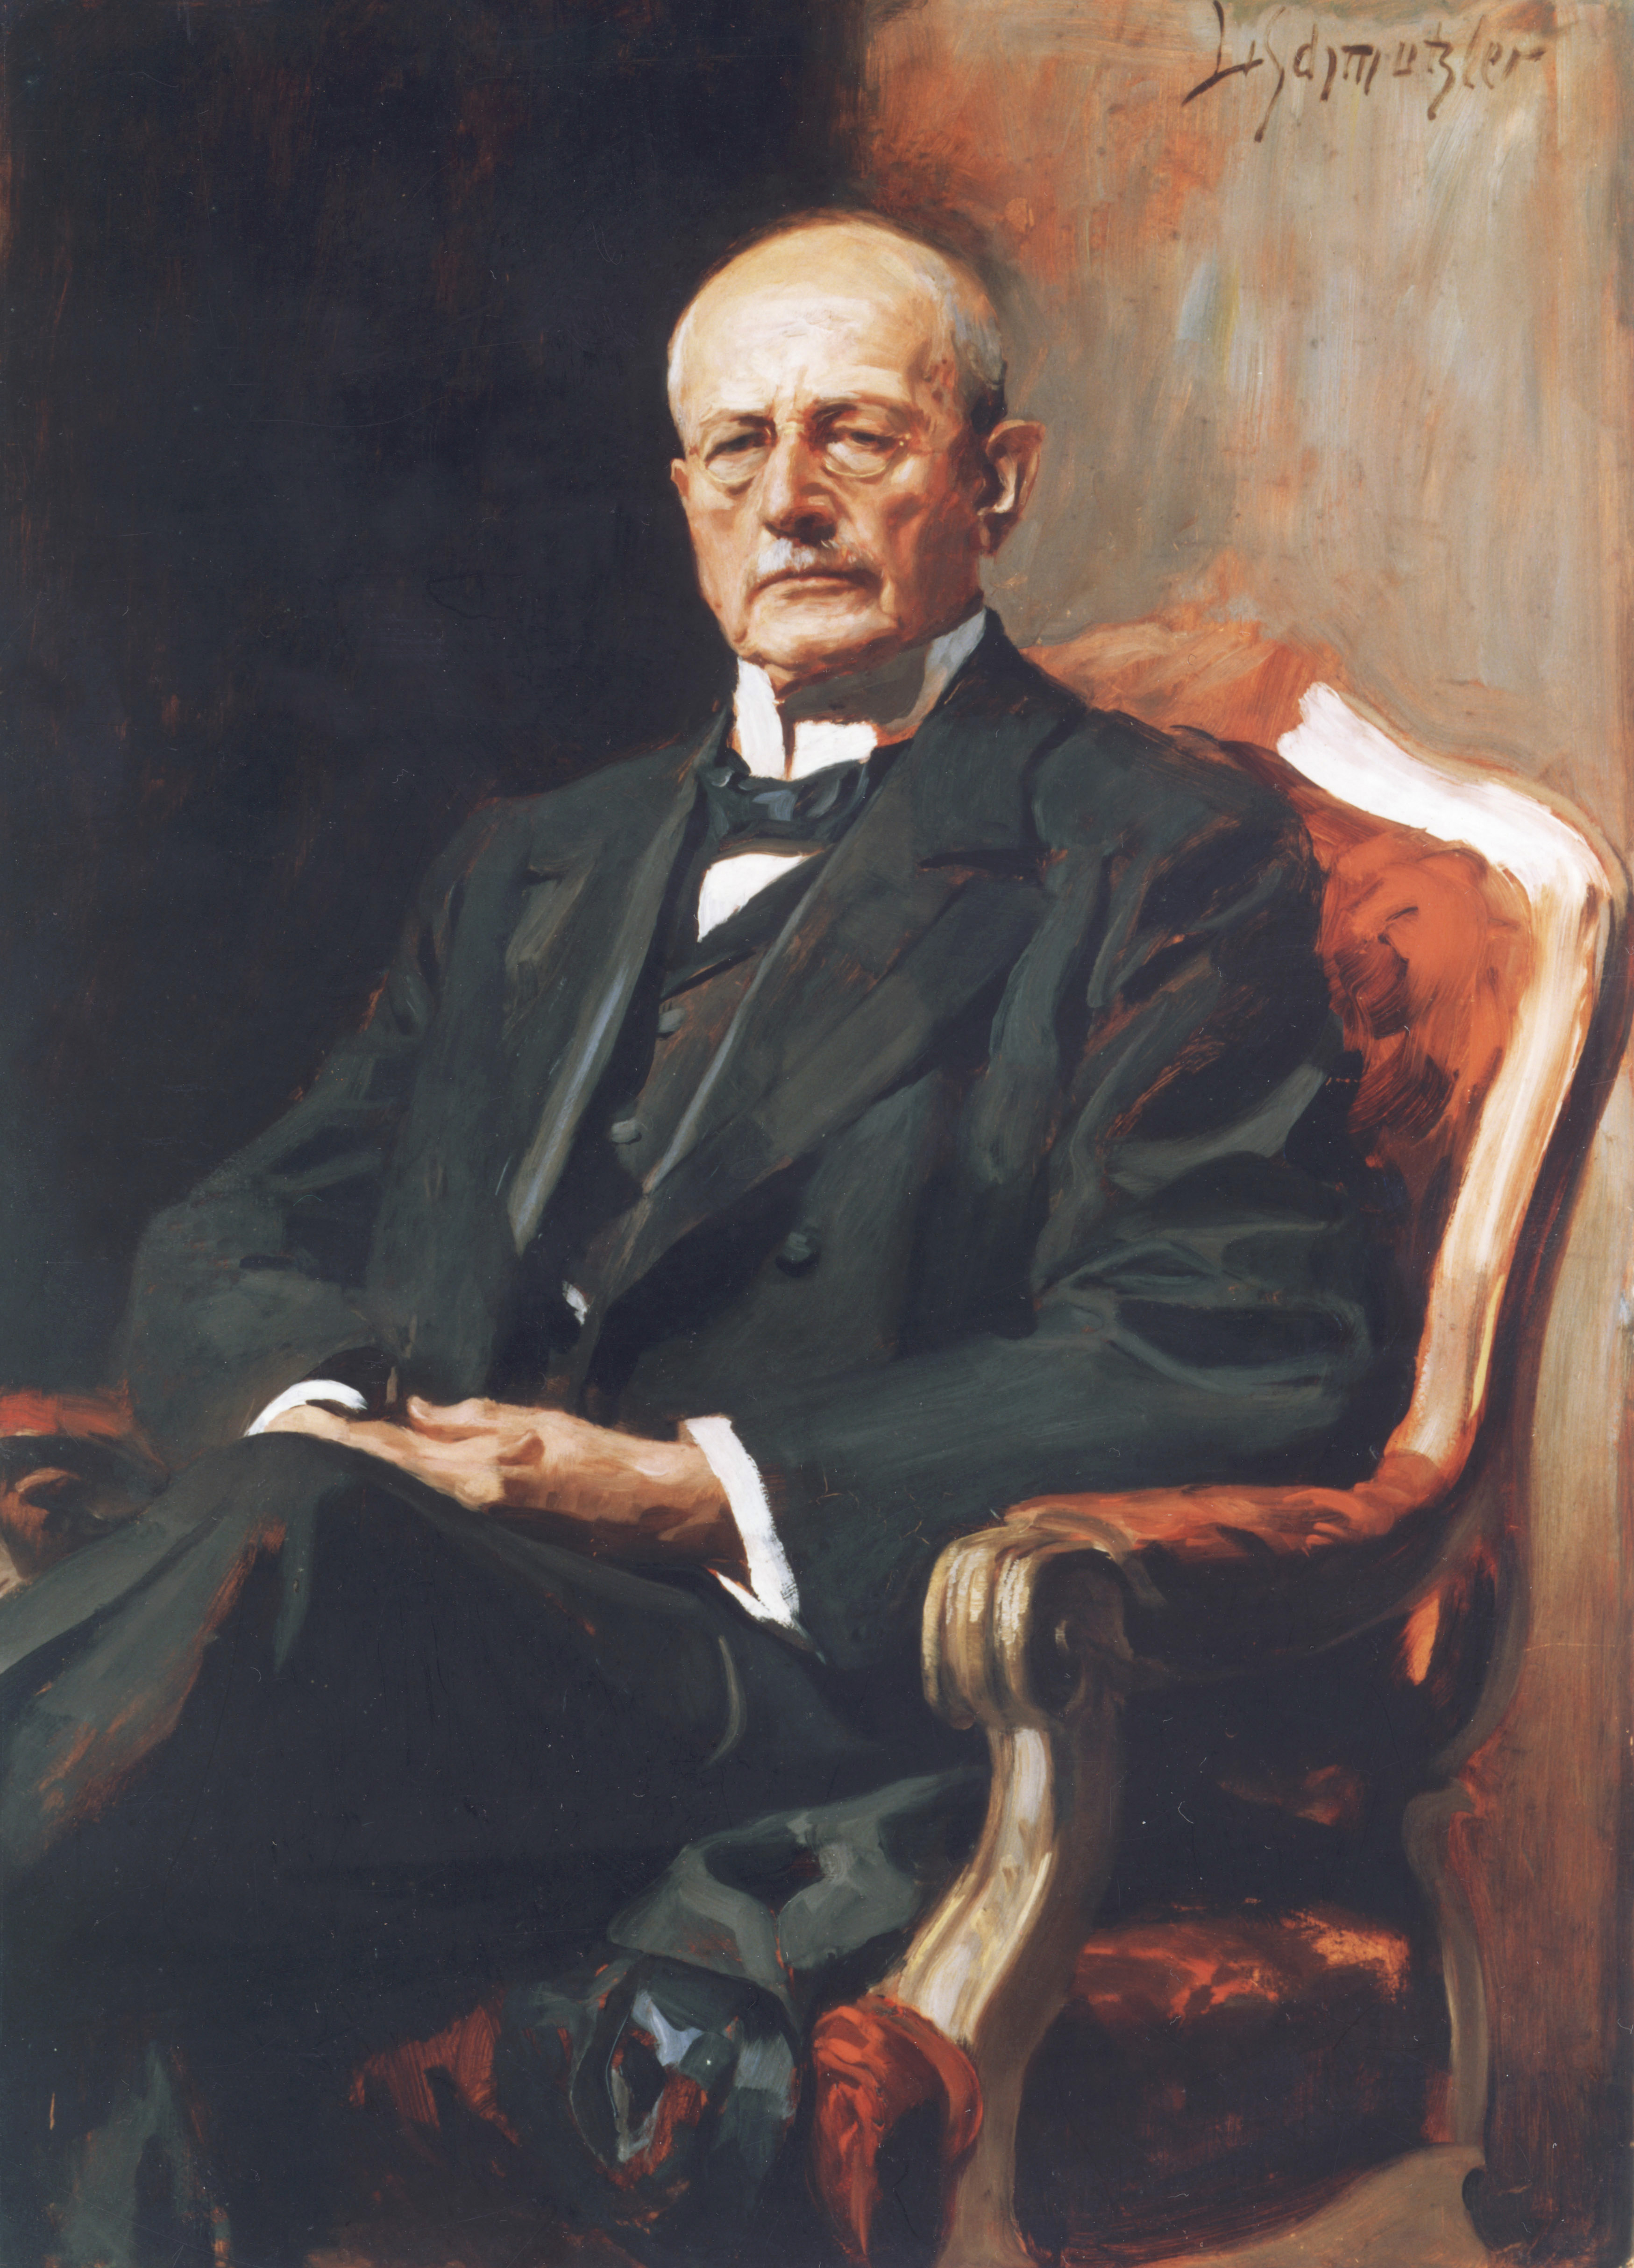 co-founder of Munich Re and Chairman of the Board of Management from 1880 to 1921.